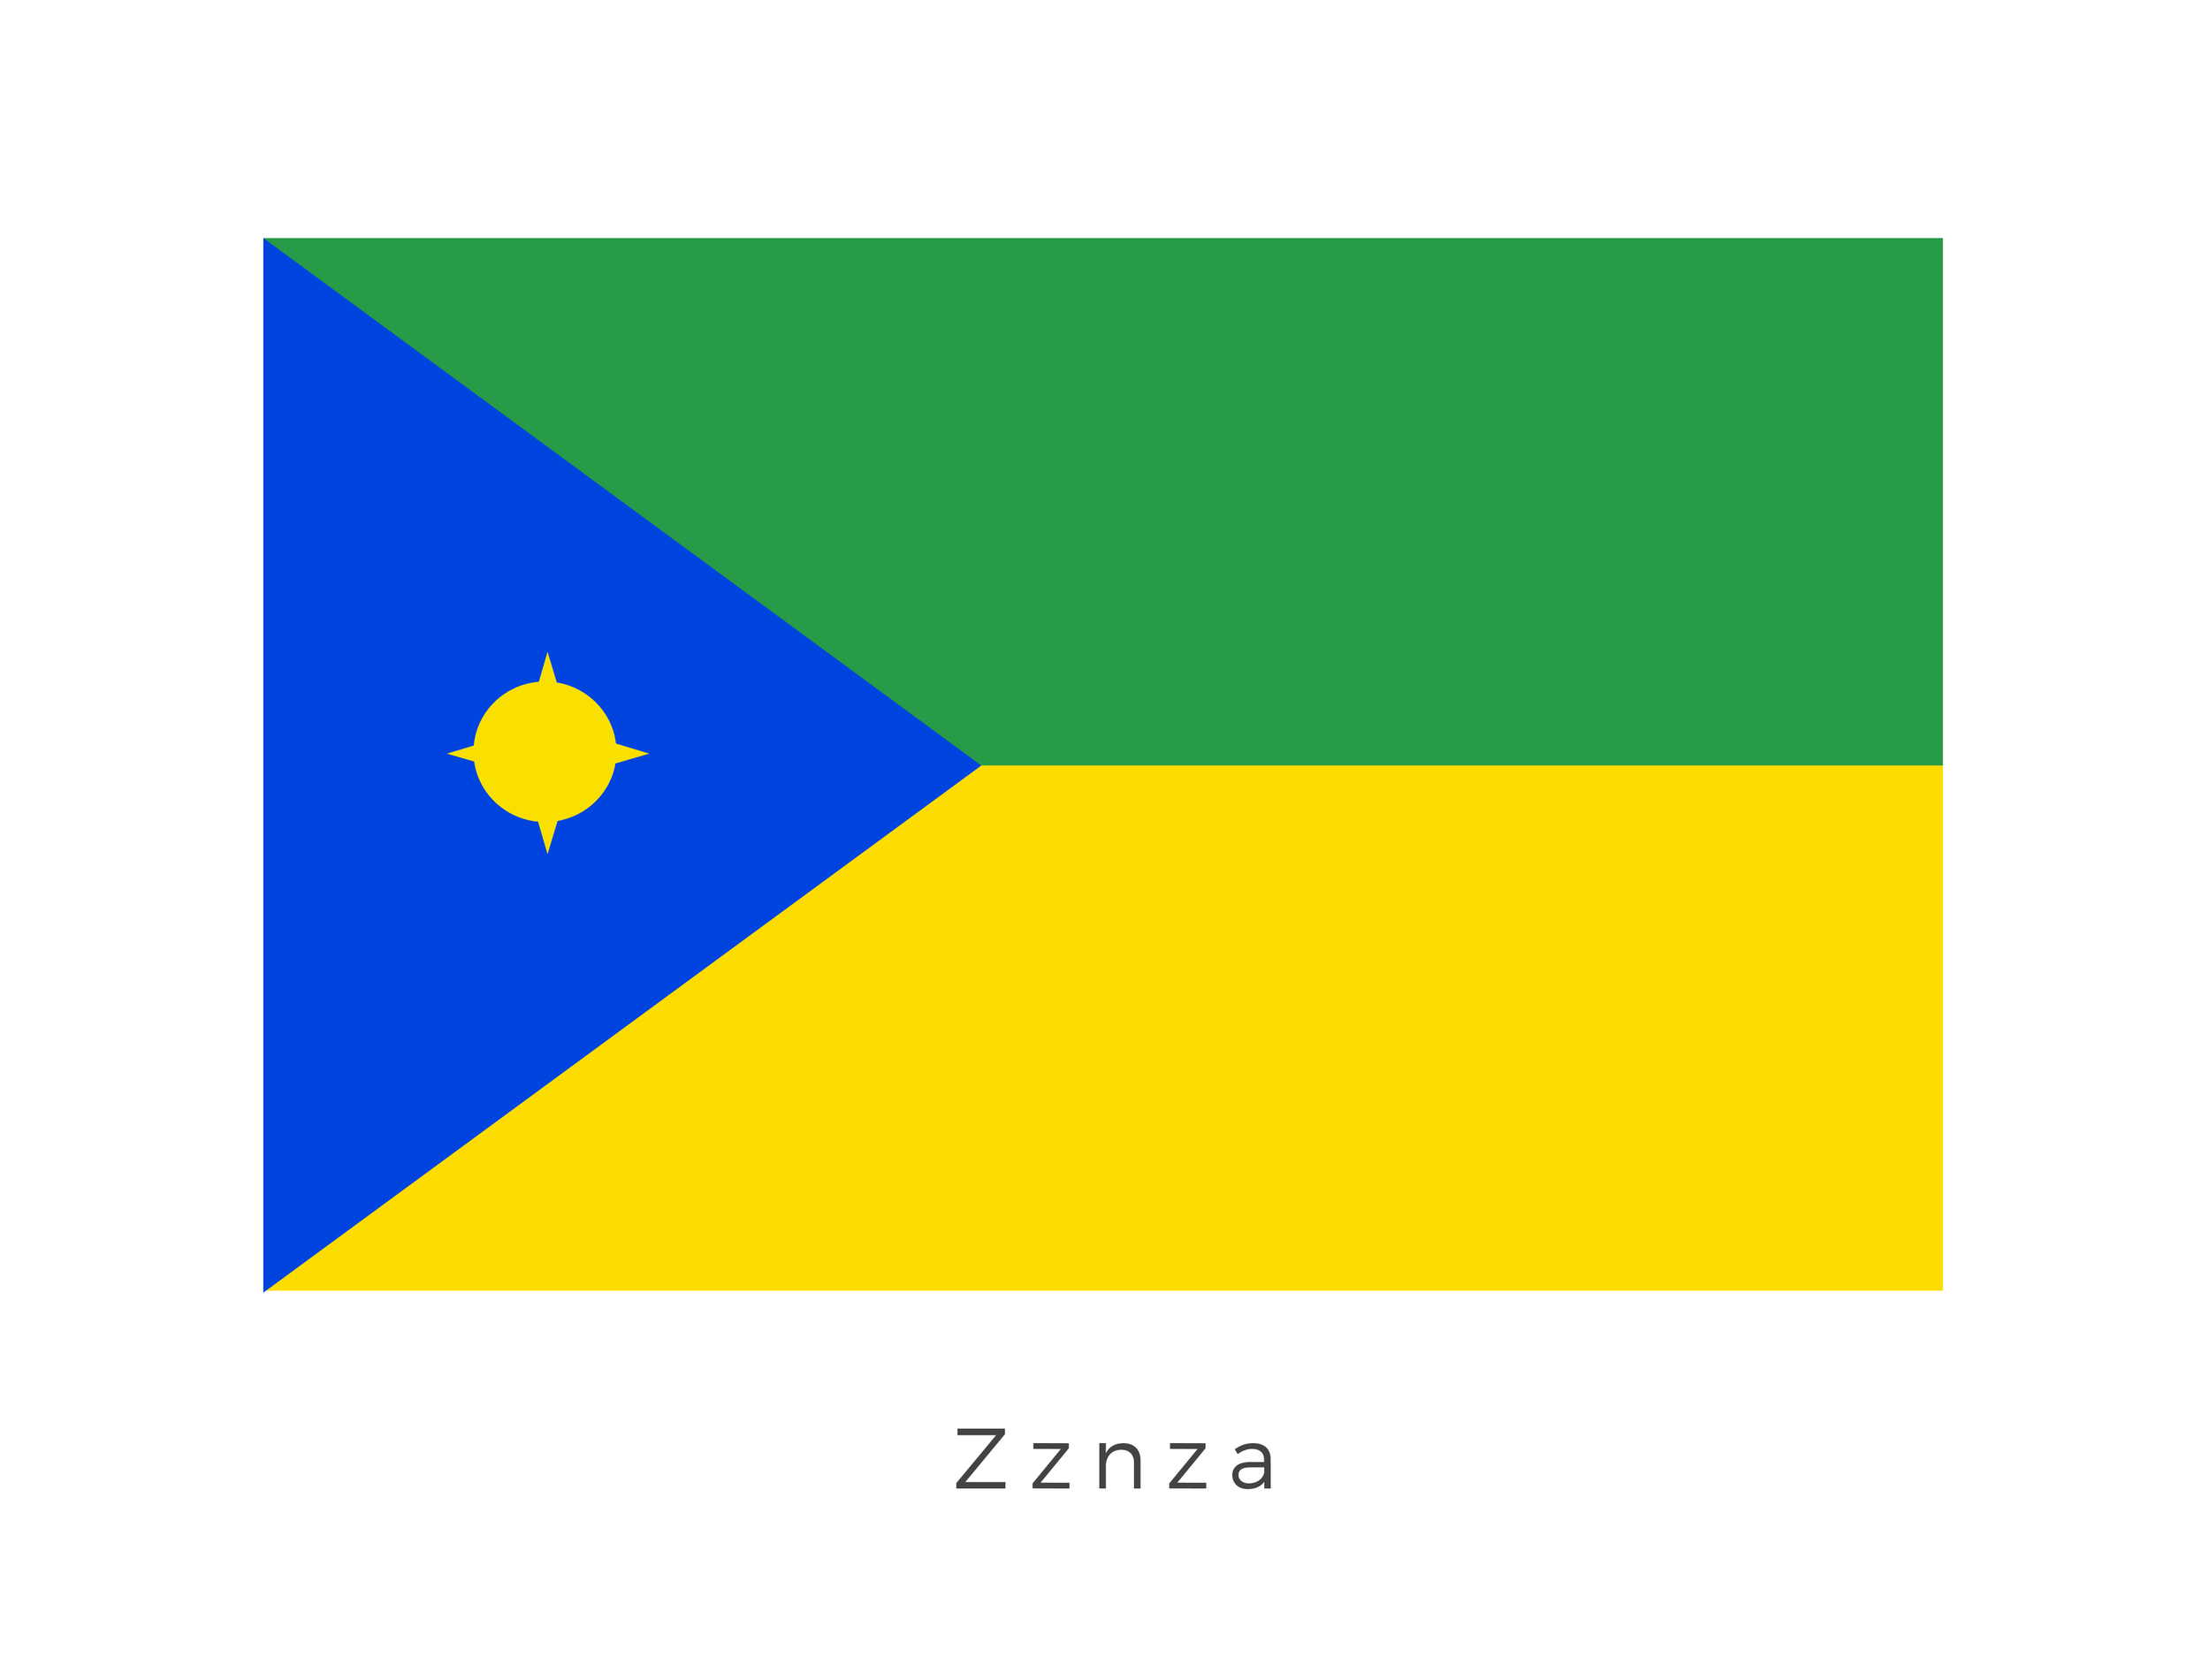 Zznza  was a planet located in the Yminis sector of the Outer Rim Territories. The Zznza system was a star system located within the Yminis sectorof the Outer Rim Territories. It contained the planet Zznza. The design of the flag follows the tradition of the native species of the Yminis sector: the Forshul.